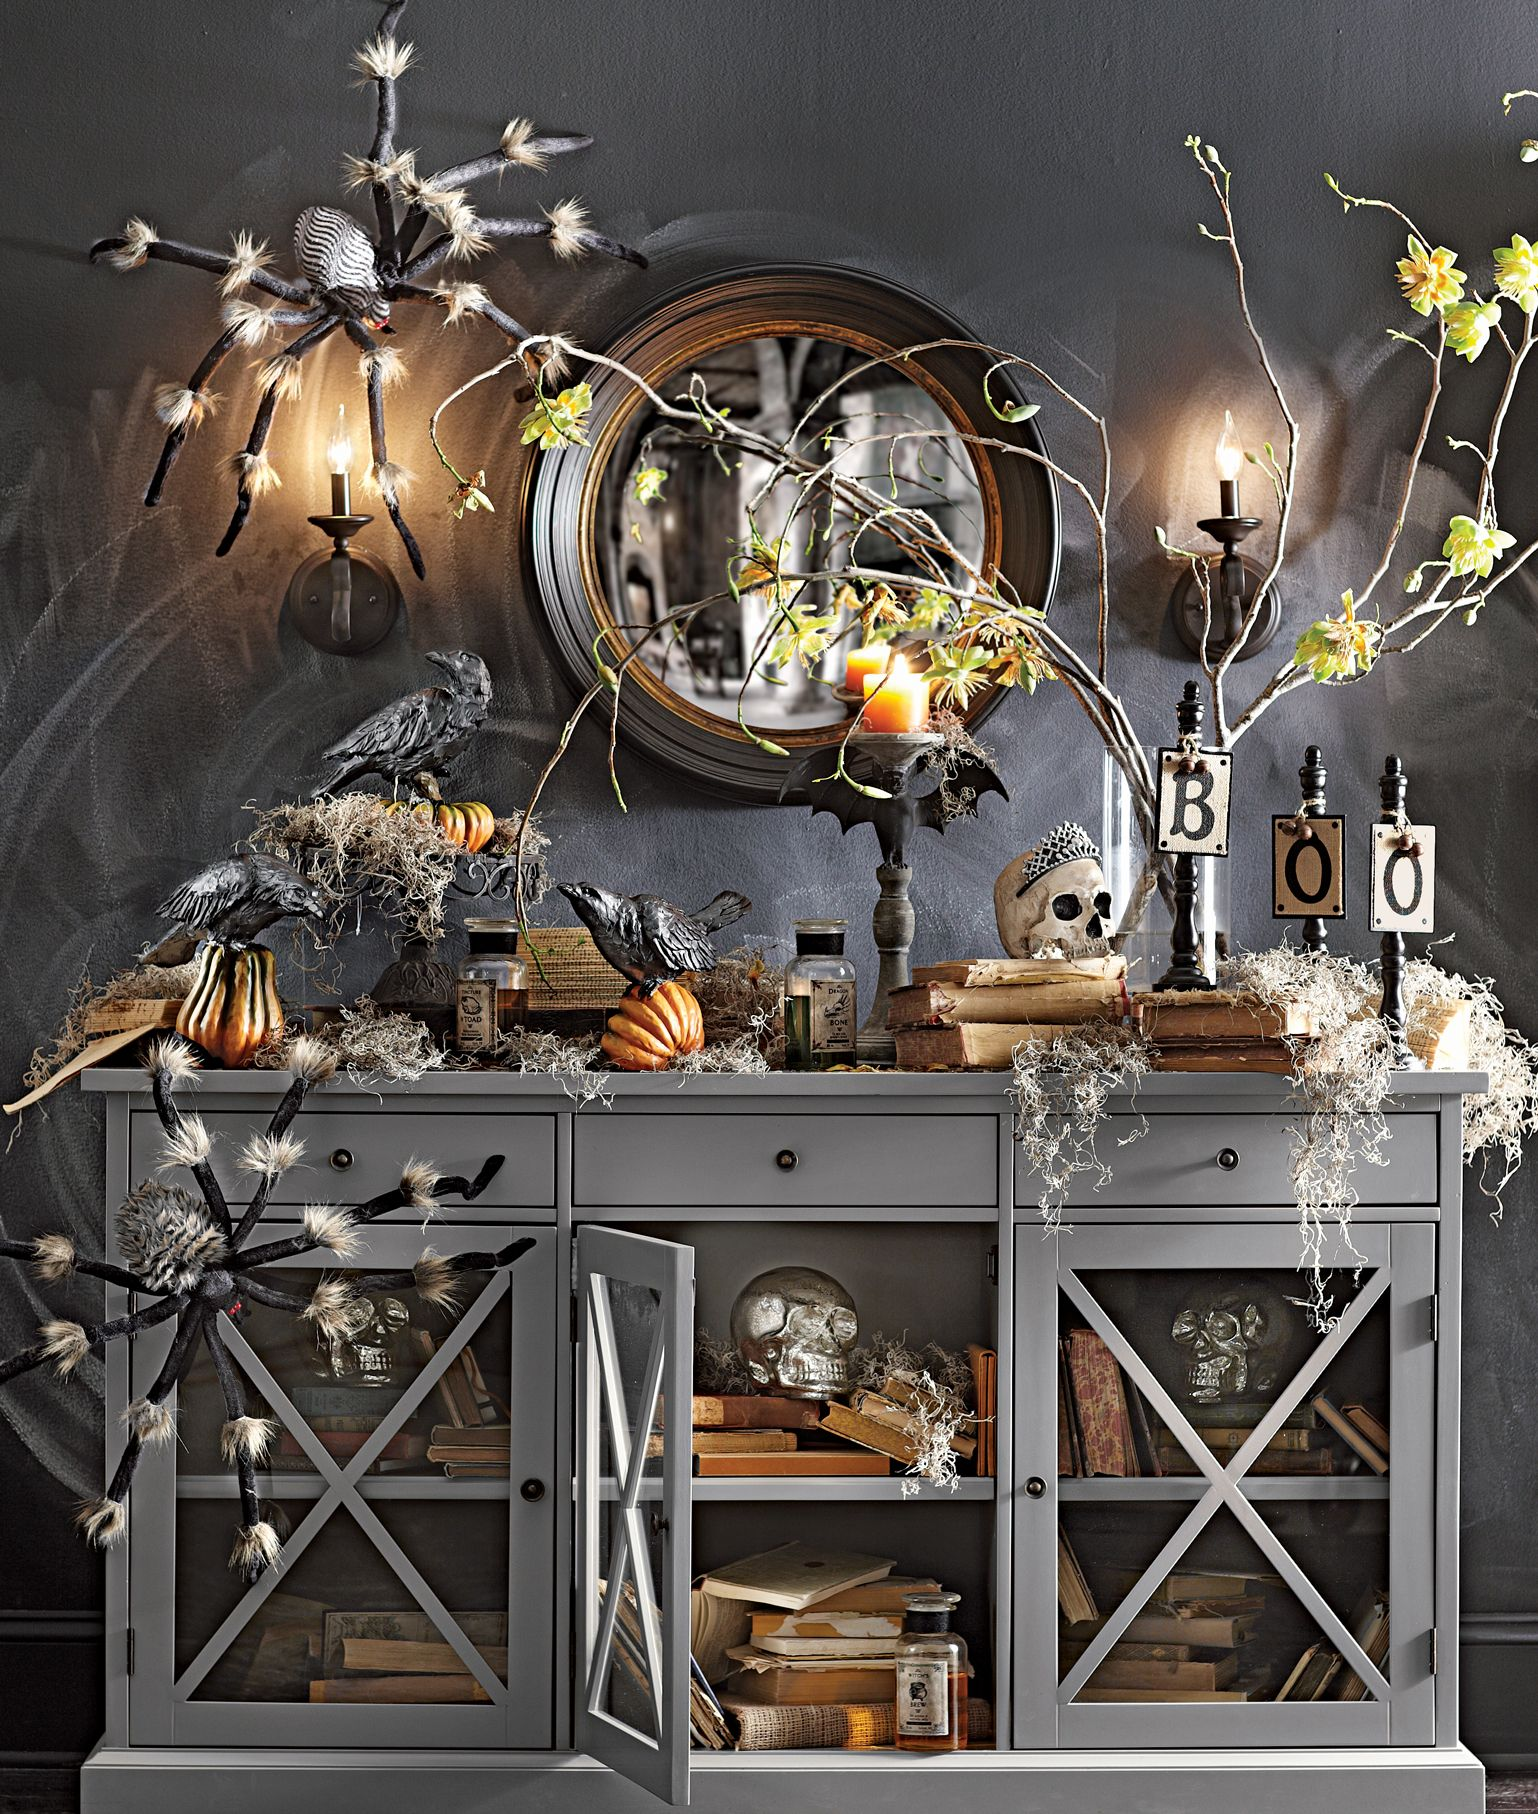 Halloween Chic Go Spooky Chic With Skulls And Large Decorative Spiders